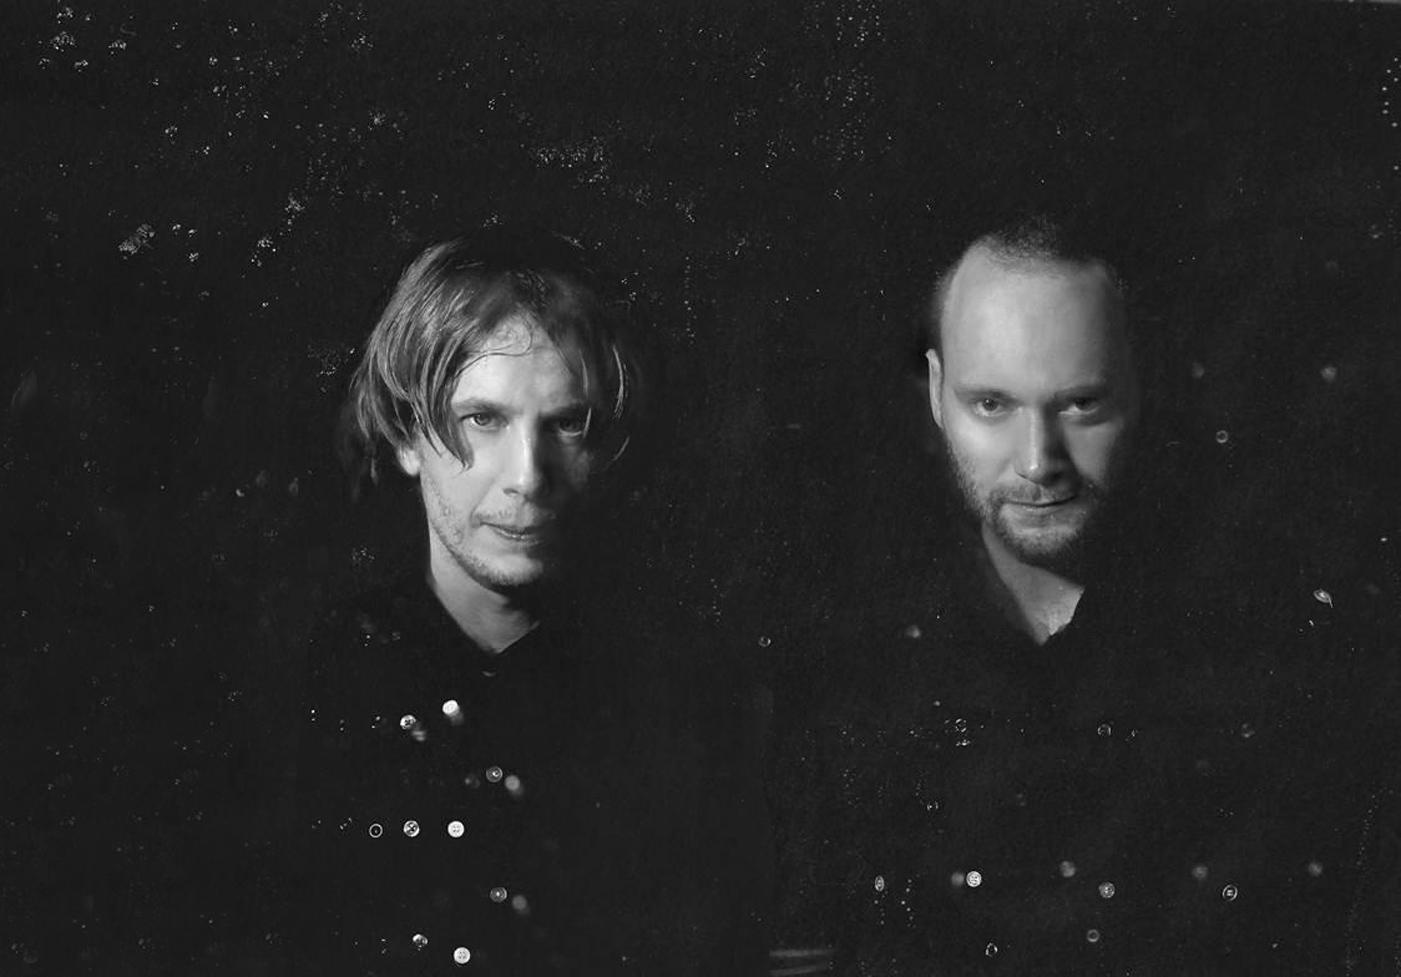 Sigur Ros Orri Pll Drason And Georg Holm Helped Craft A Sprawling Circus Inspired Instrumental Album Circe To Soundtrack The BBC Documentary